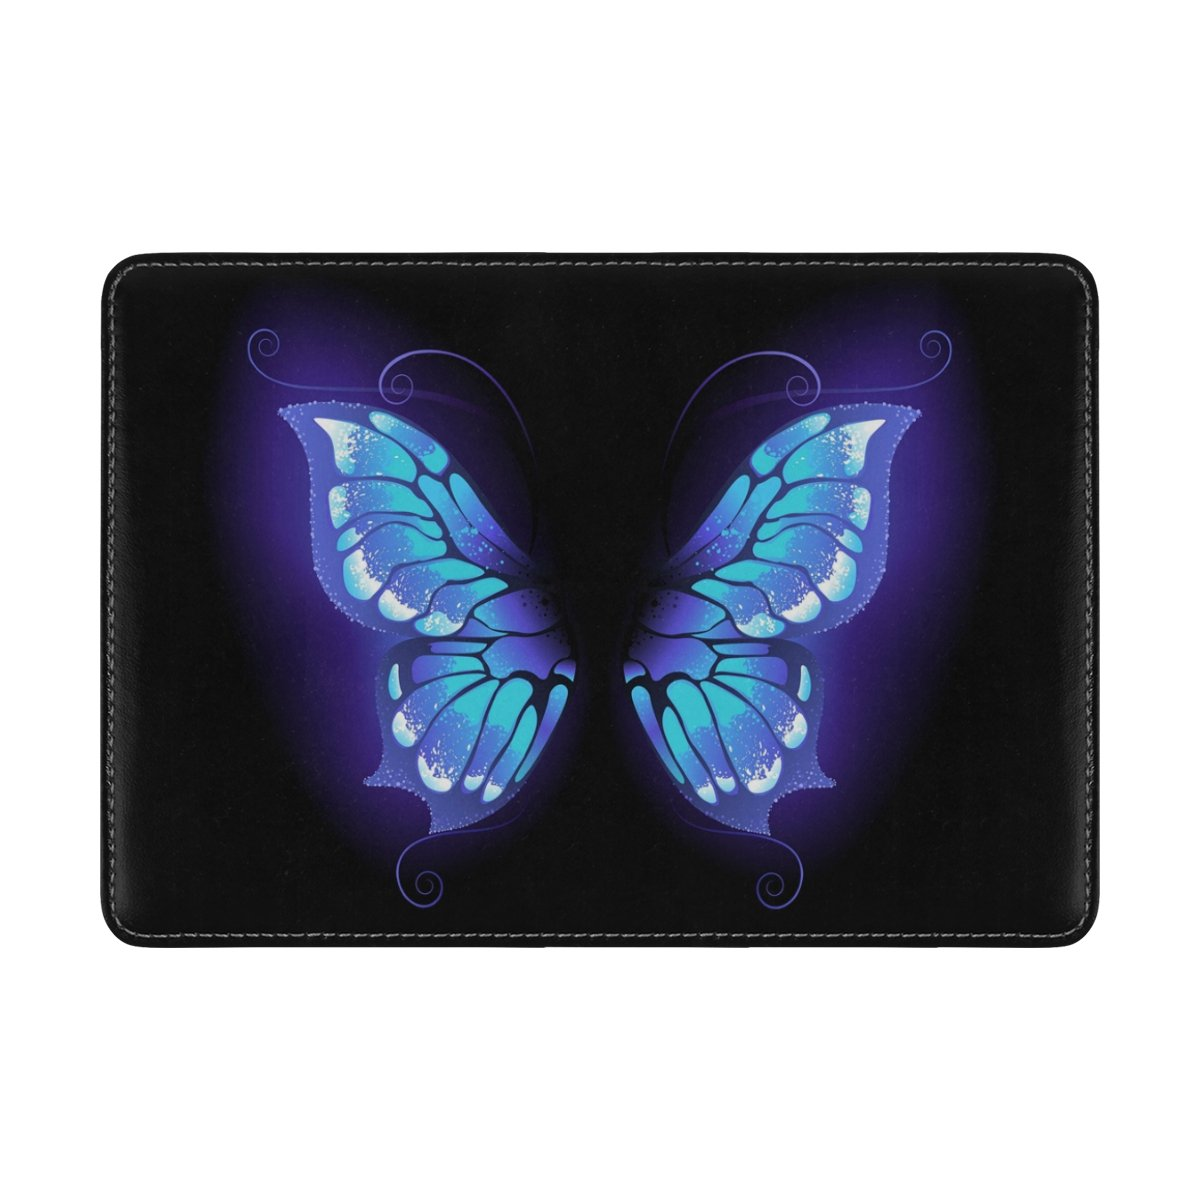 ALAZA Purple Butterfly Black Leather Passport Holder Cover Case Travel One Pocket by ALAZA (Image #2)